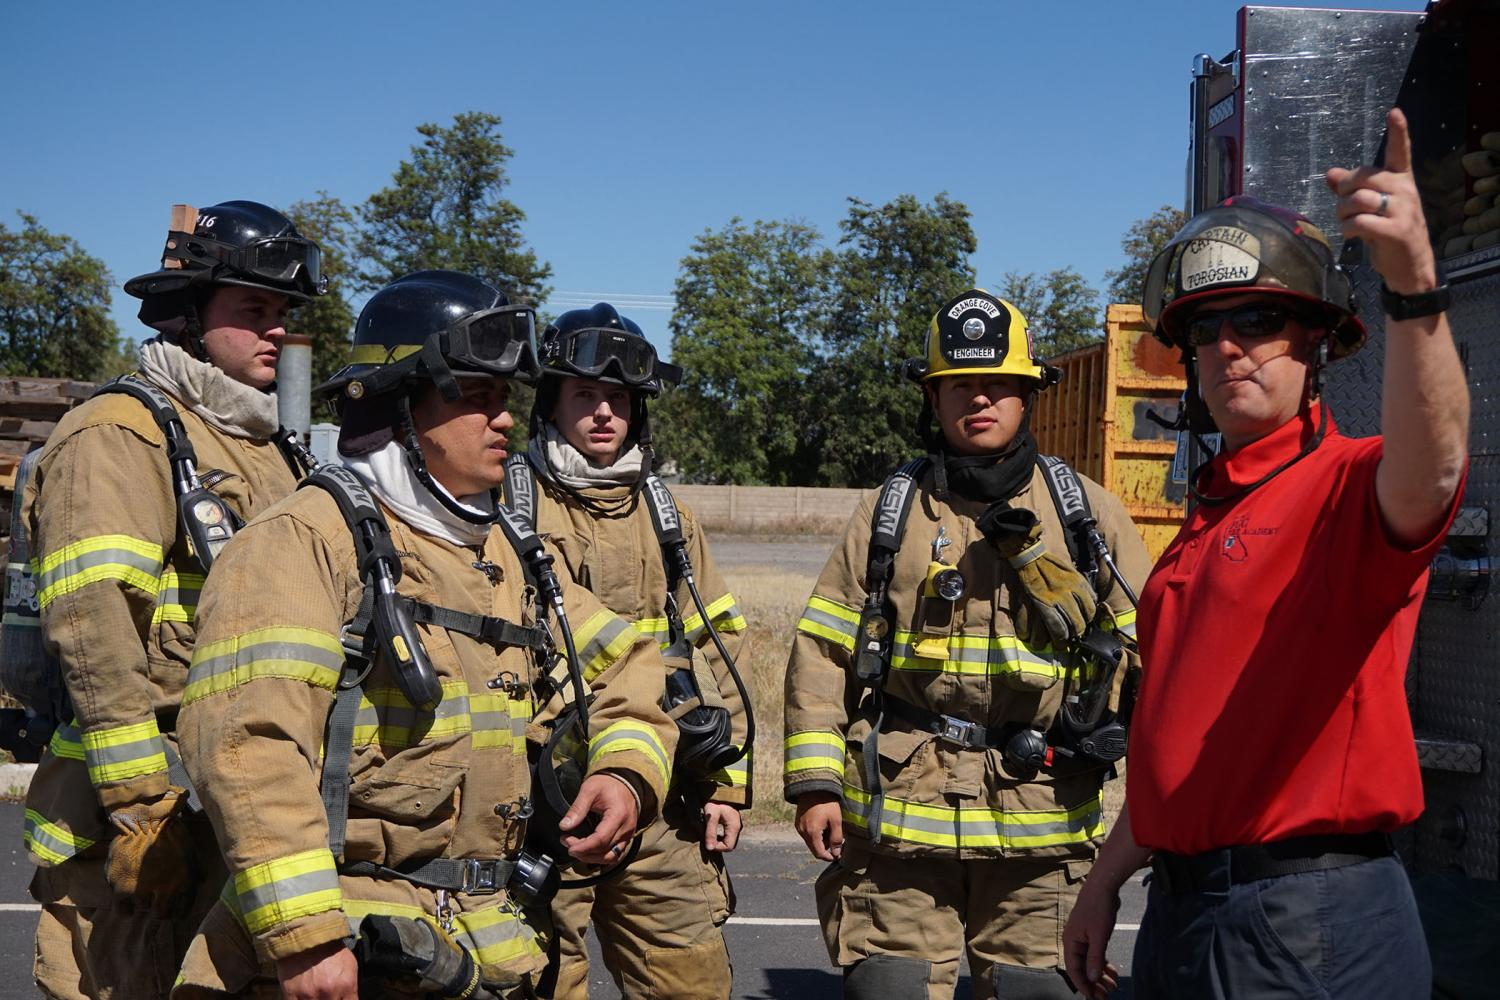 An+instructor+explains+to+the+Fresno+City+College+Fire+Academy+students+what+they+need+to+do+to+salvage+a+simulated+second+story+apartment+at+the+Clovis+Fire+Training+Center+on+Saturday%2C+April+29%2C+2017